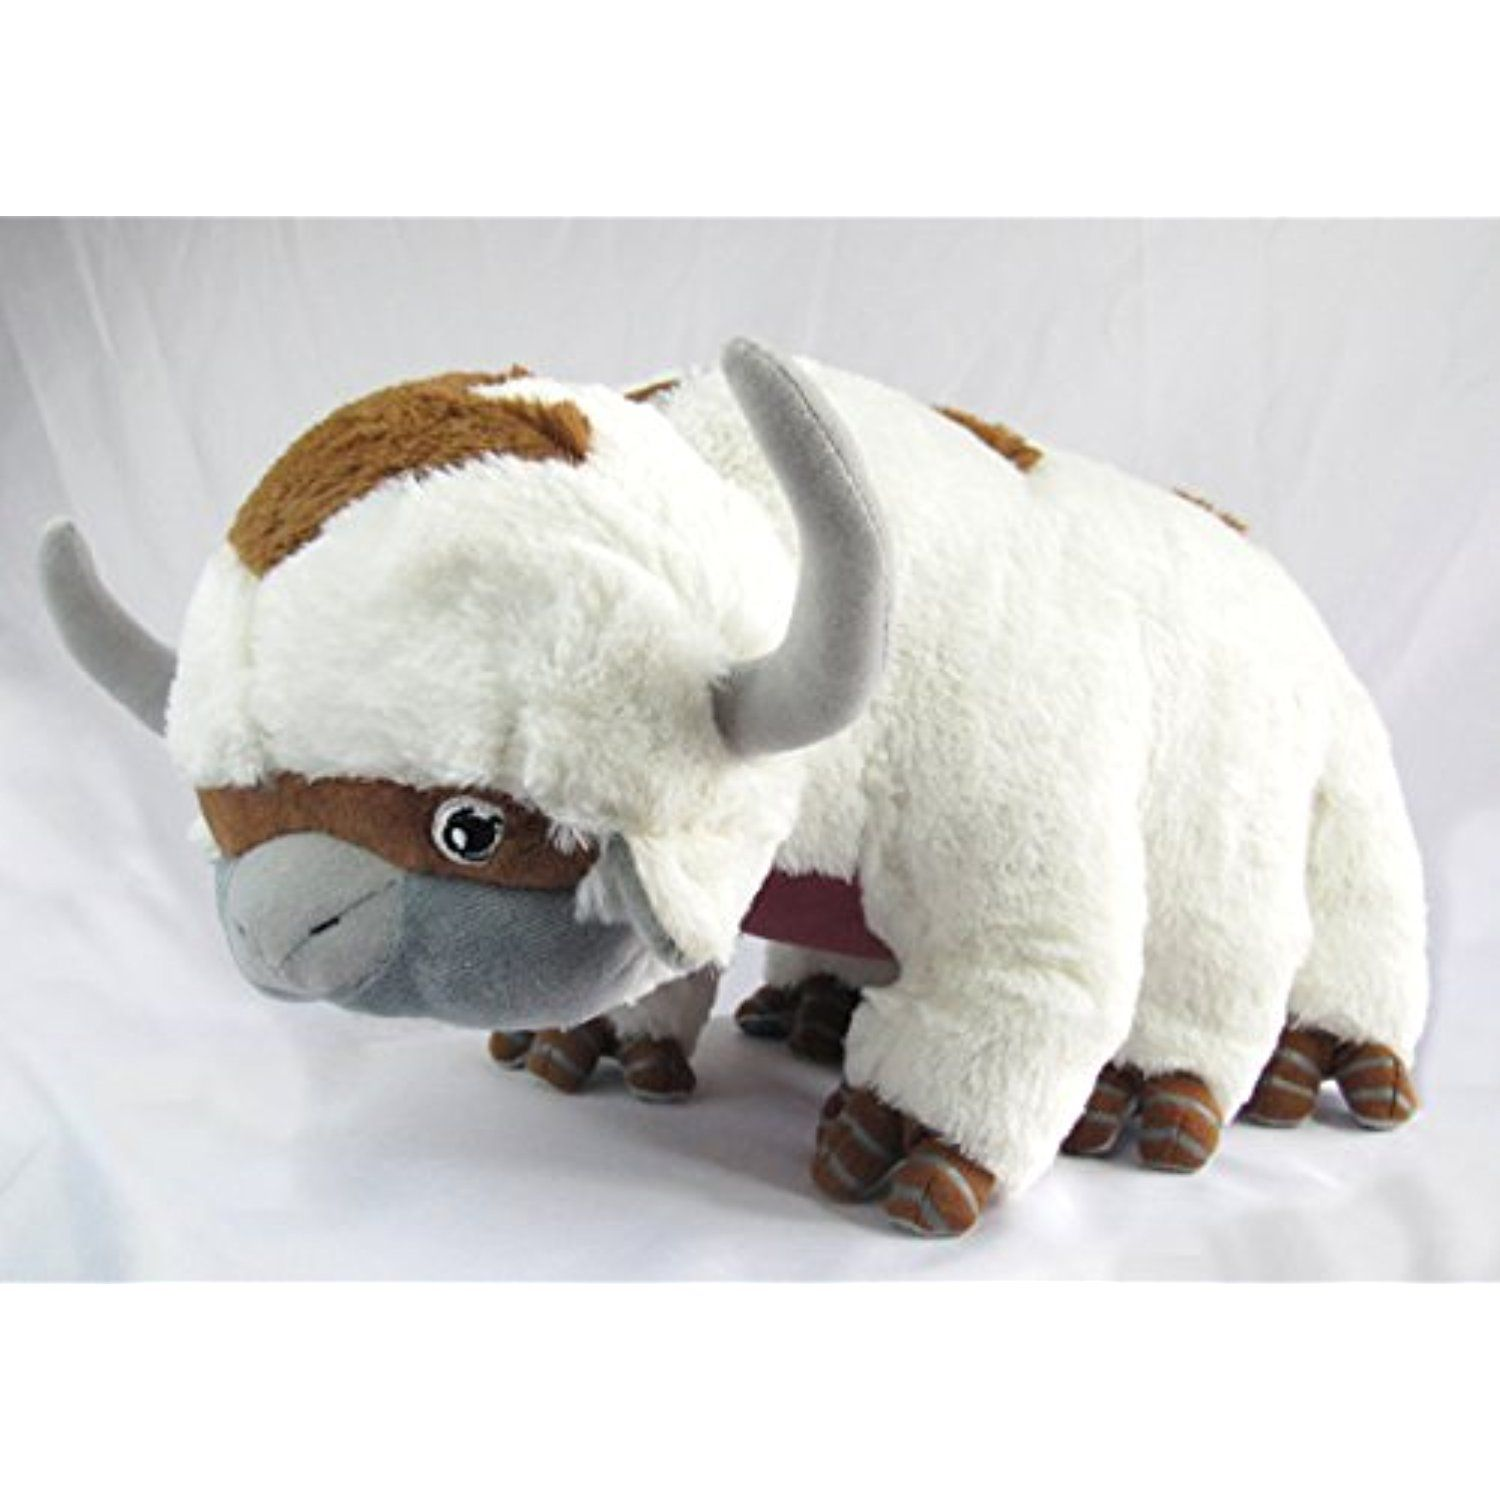 "Large Appa Avatar Plush Jumbo 20"" inches Last Airbender"